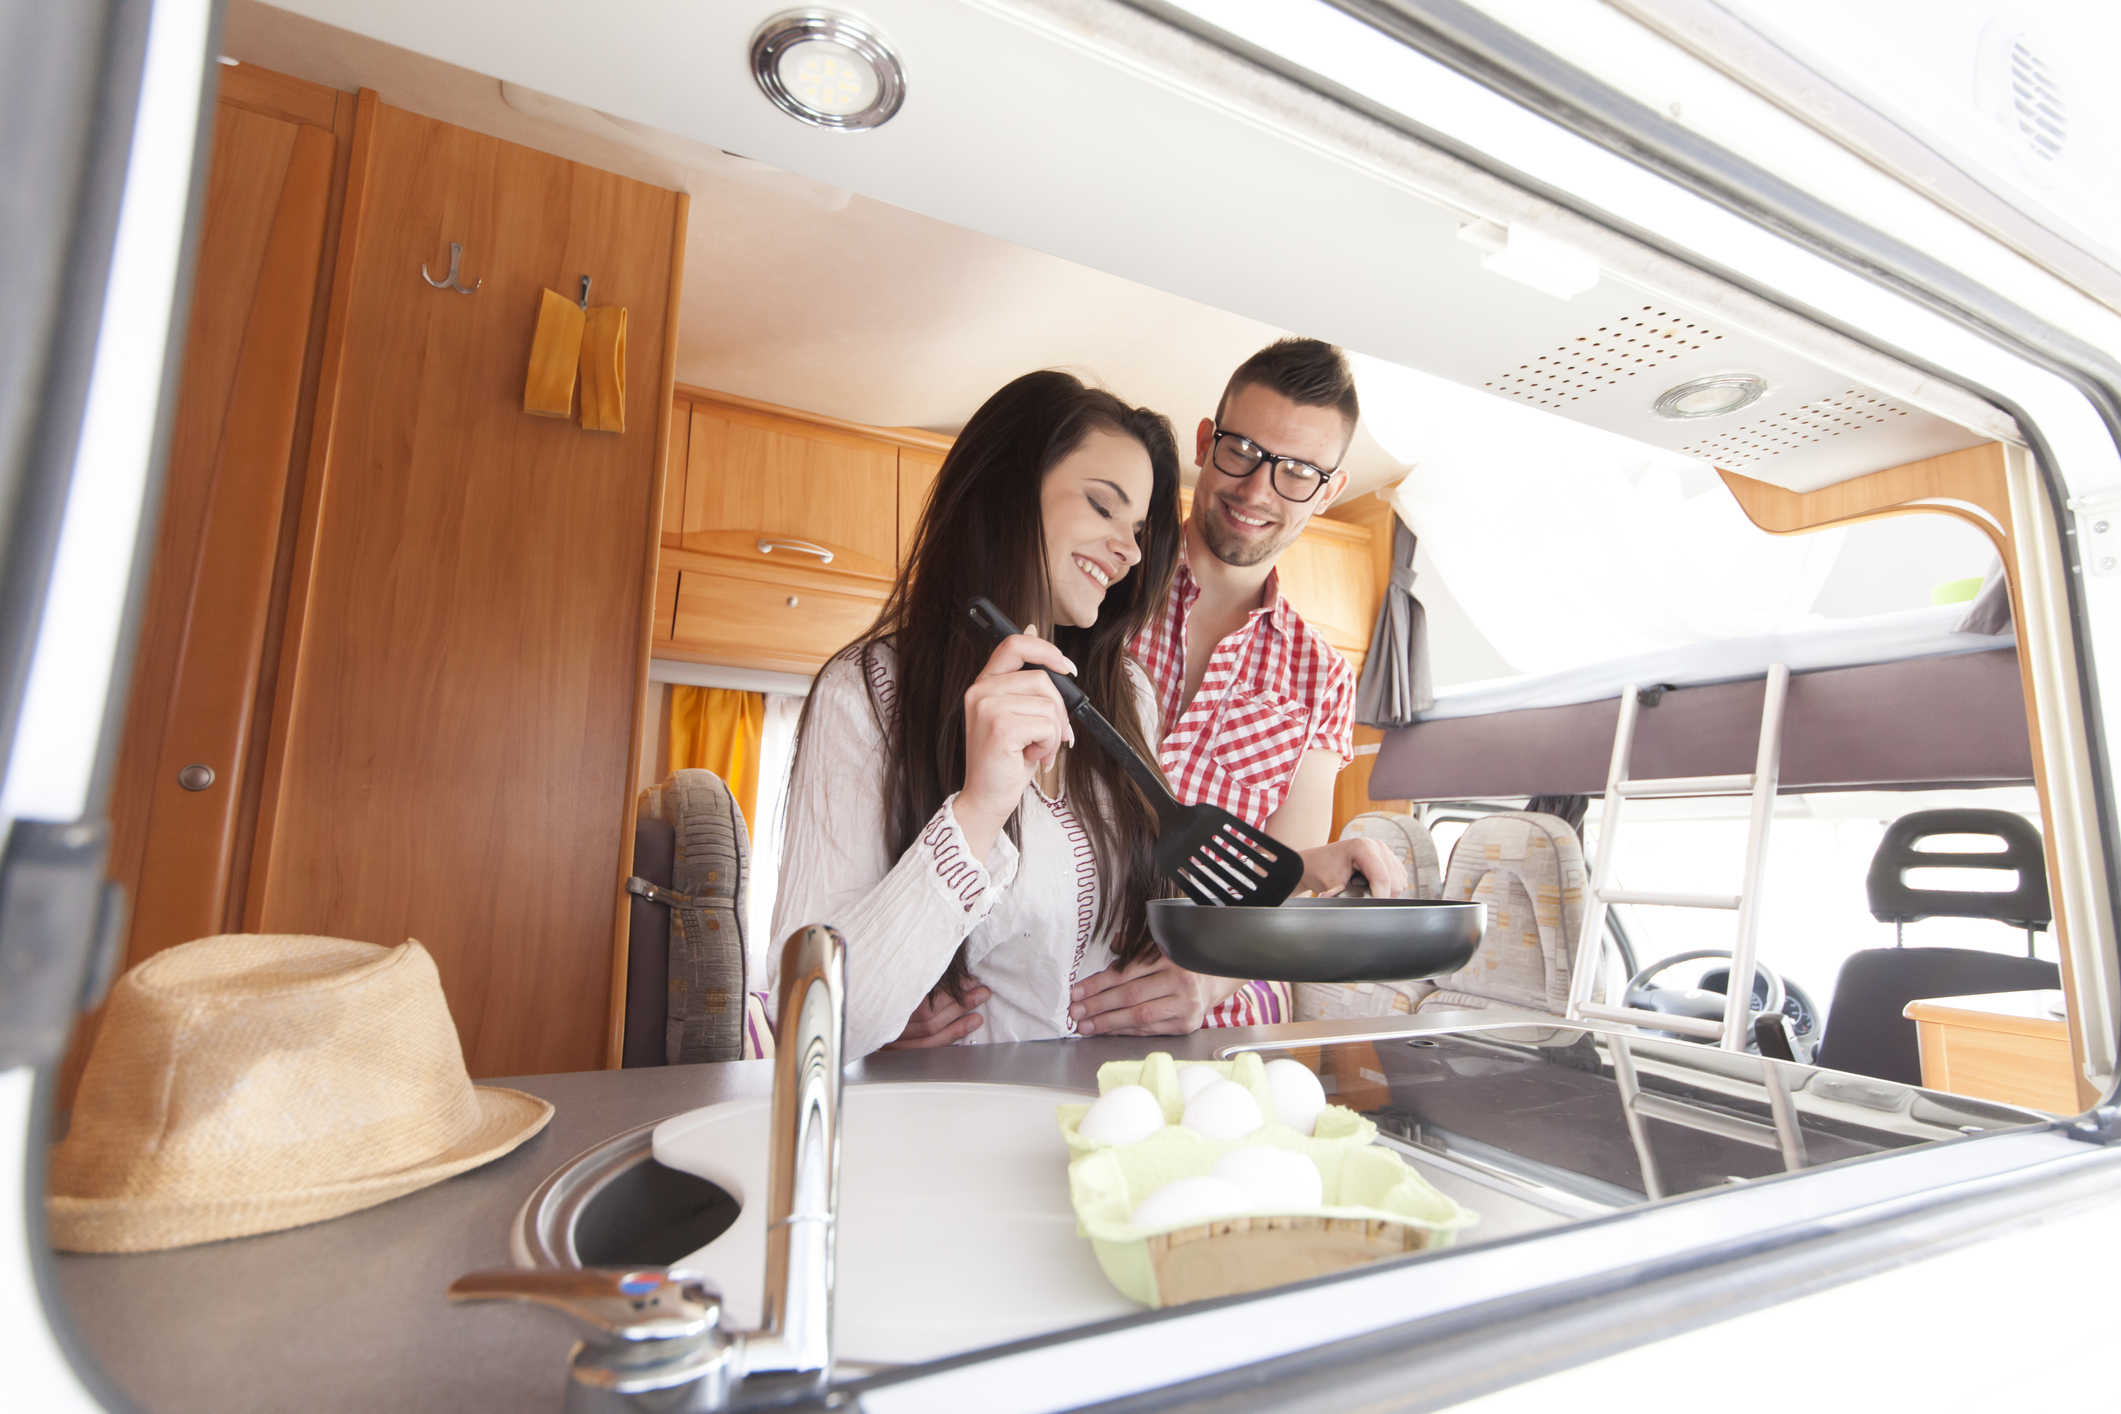 simple RV meals - couple cooking in an RV